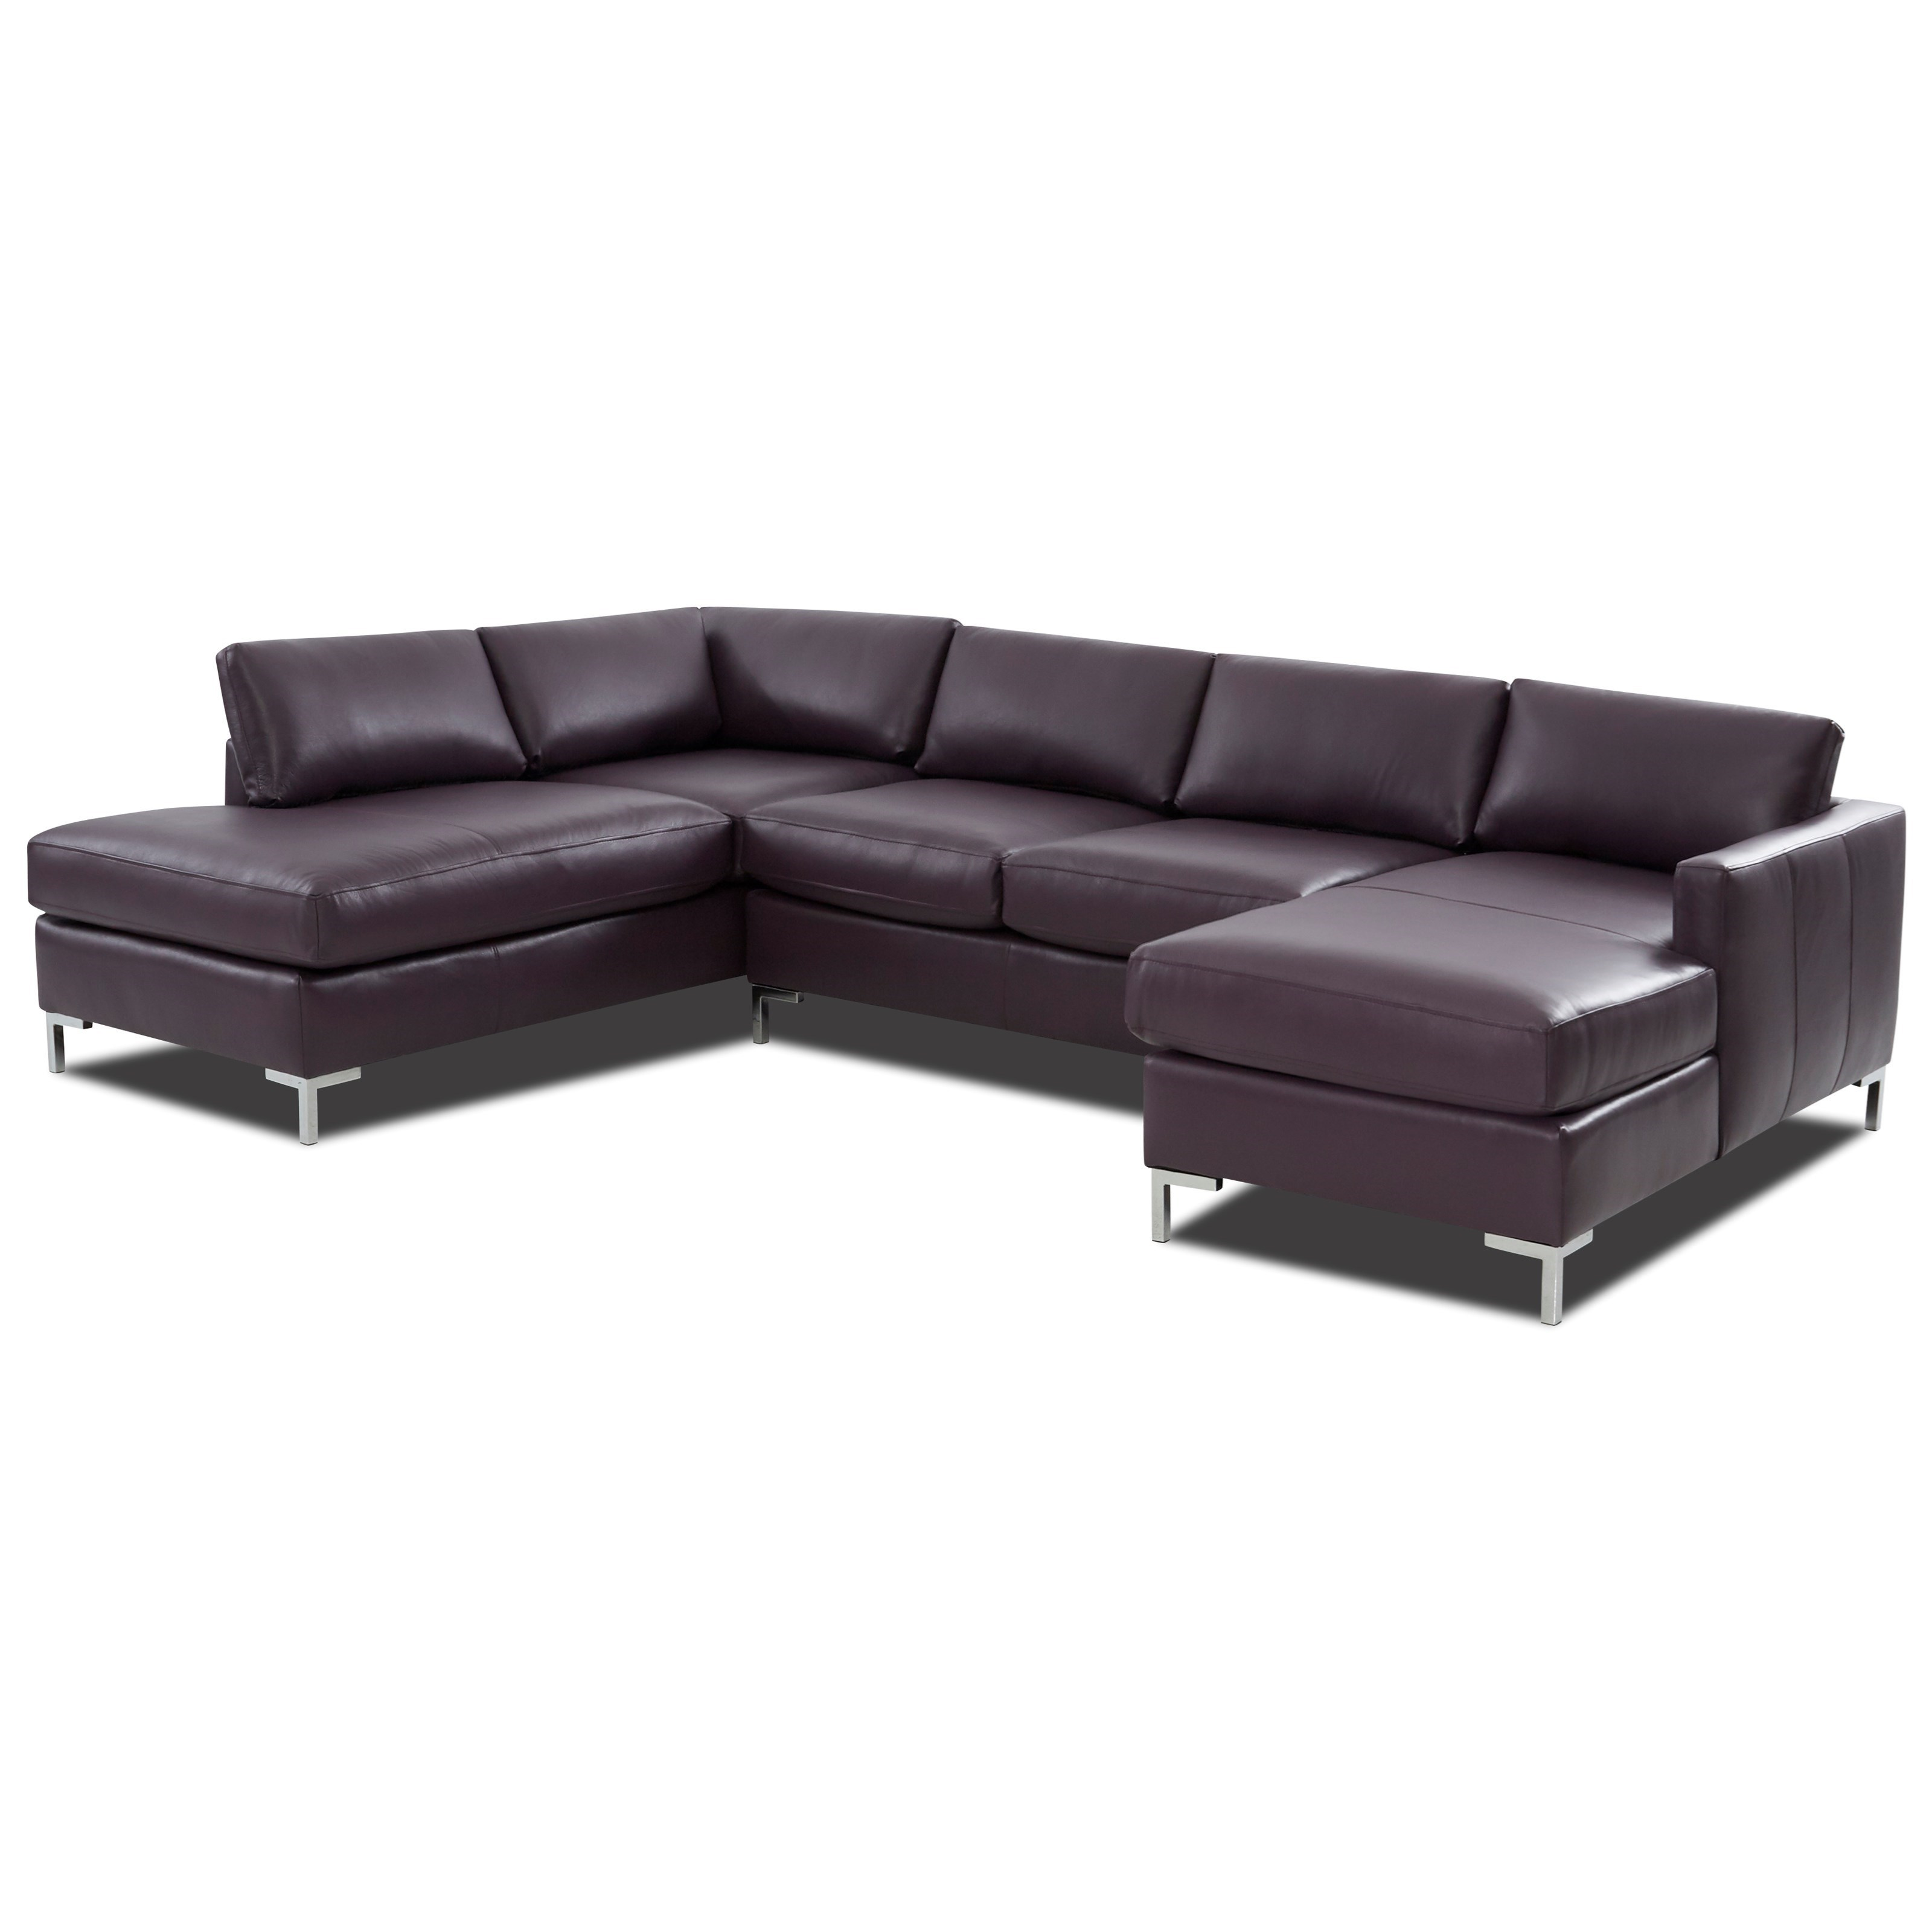 Contemporary 4-Seat U-Shape Sectional Sofa with LAF Sofa Chaise